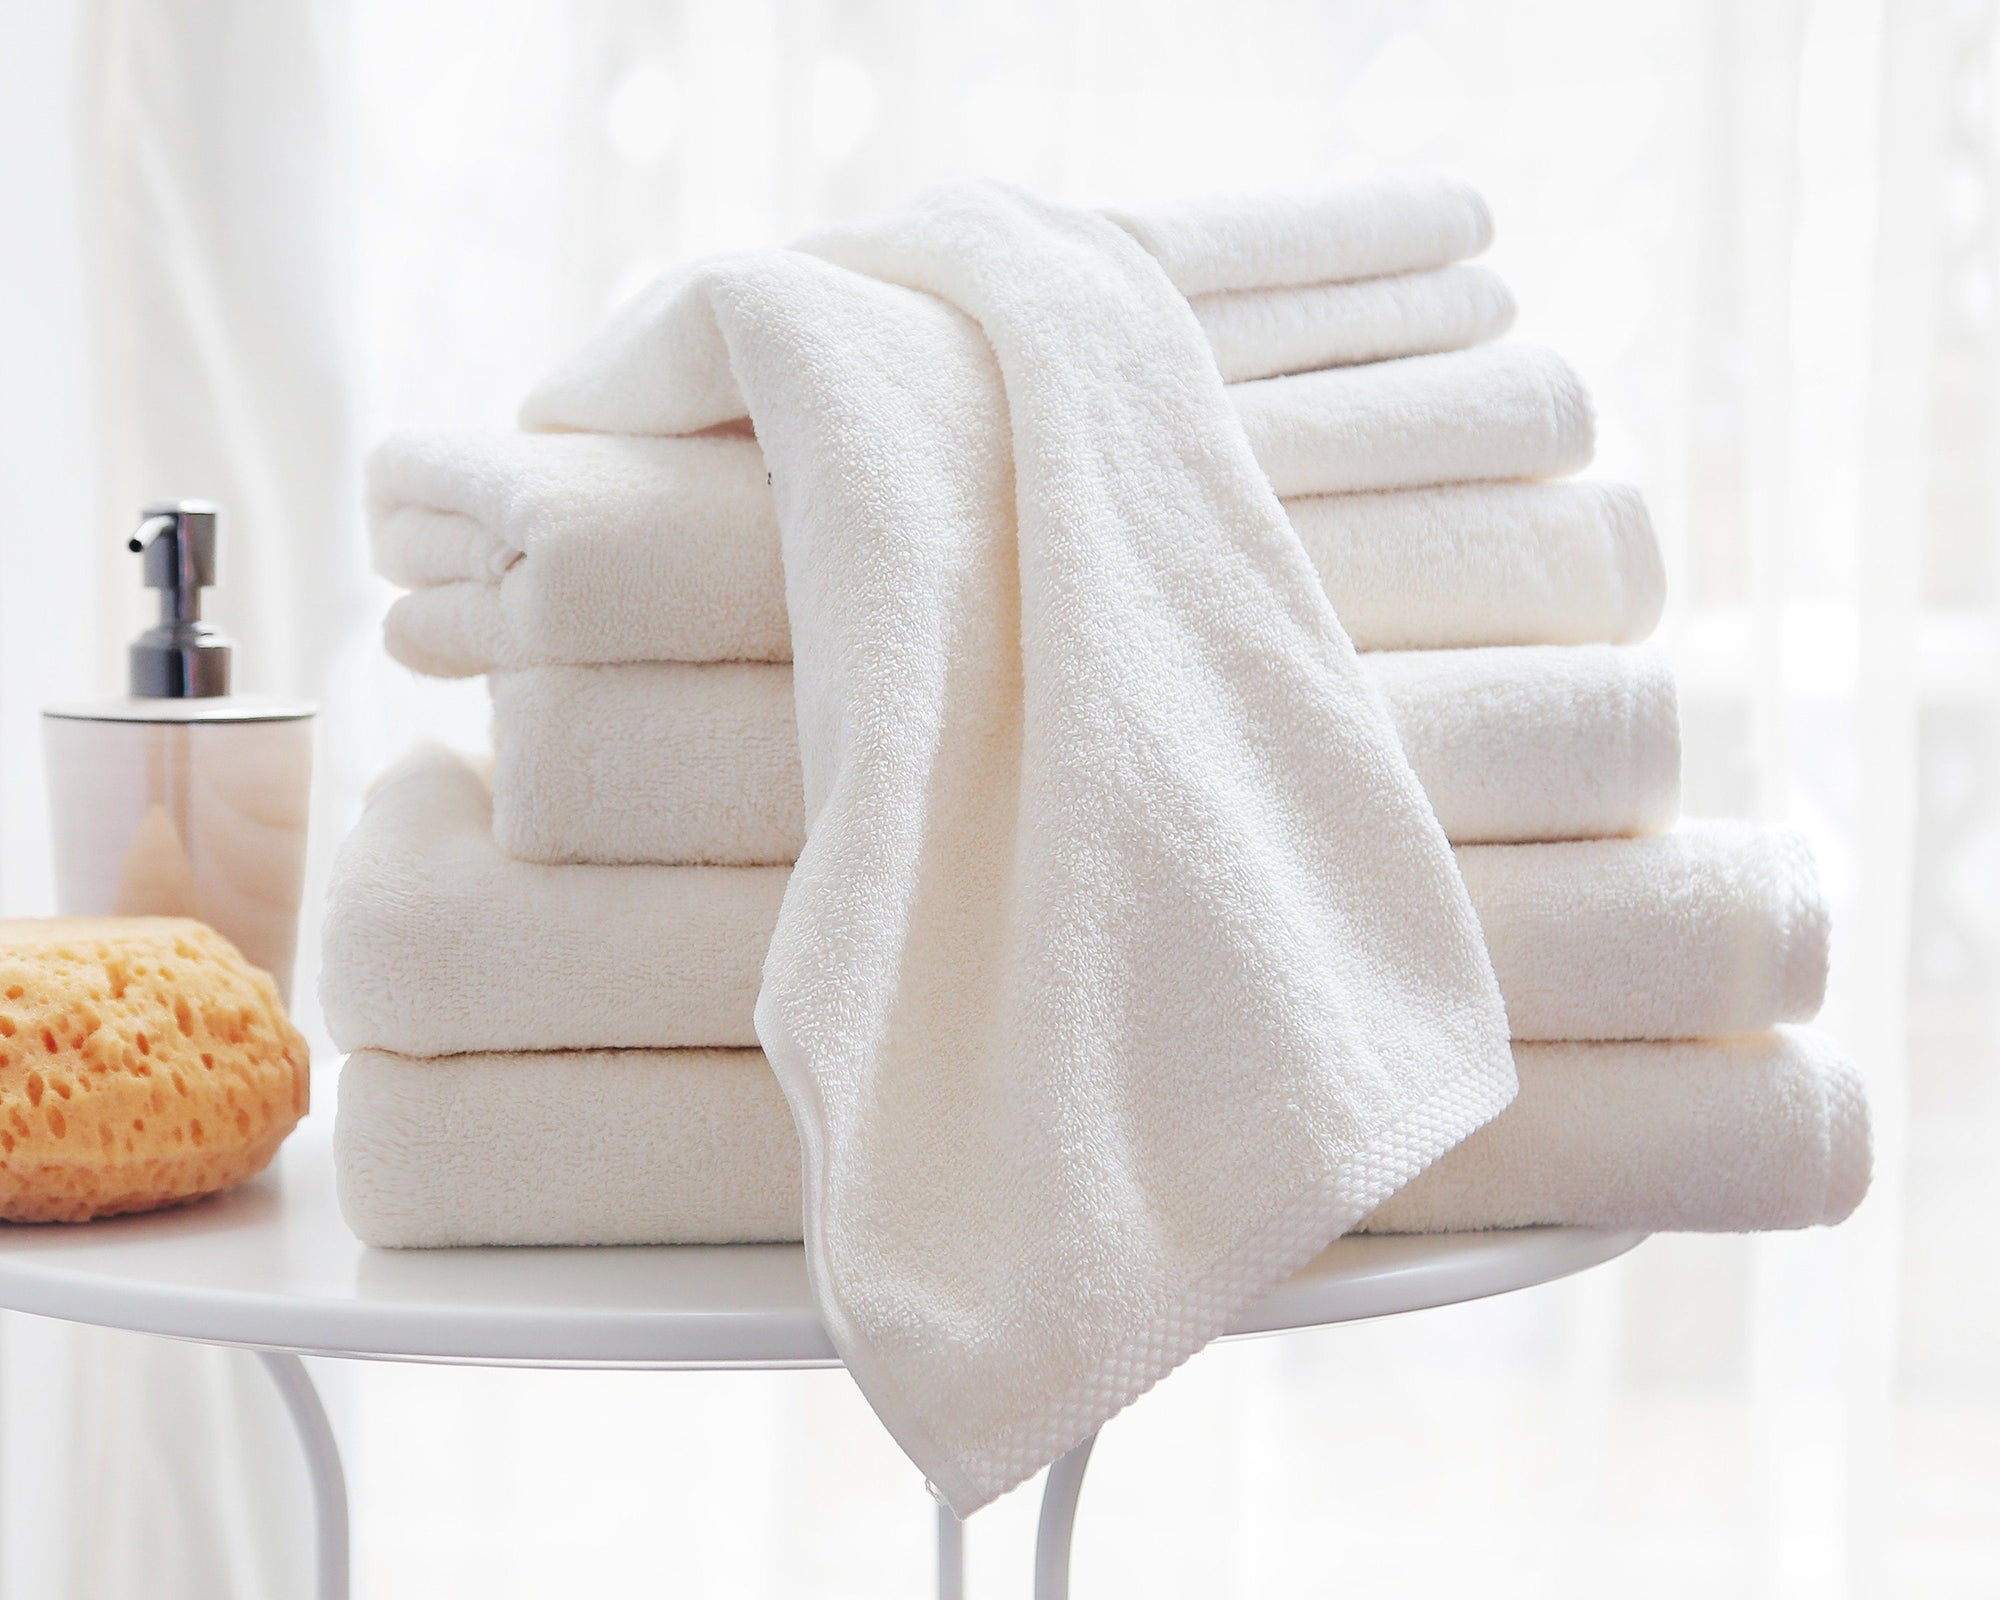 5 Secrets to Washing Luxury Towels